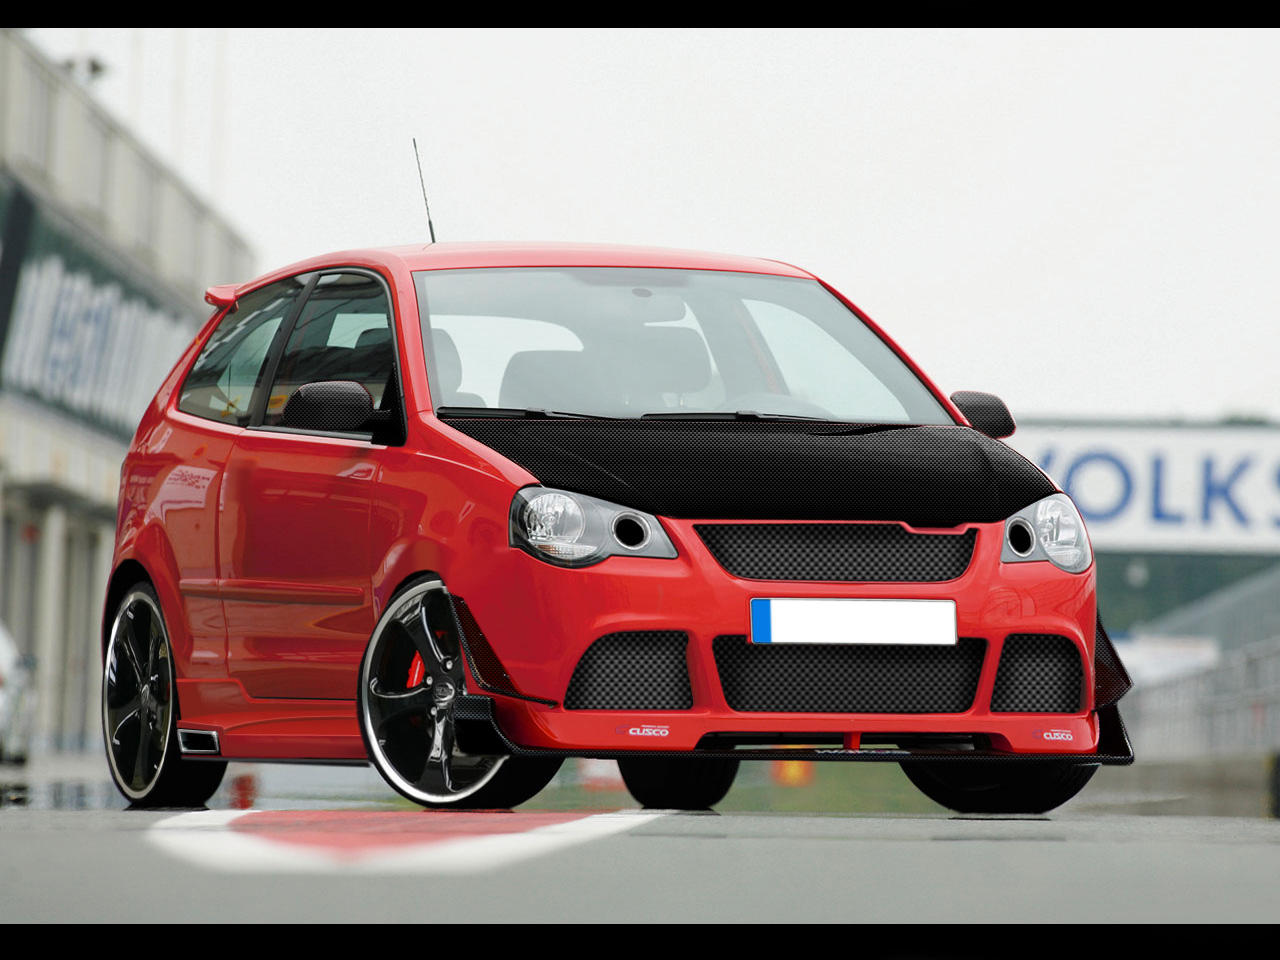 Polo GTI Evo Sharpshooter by